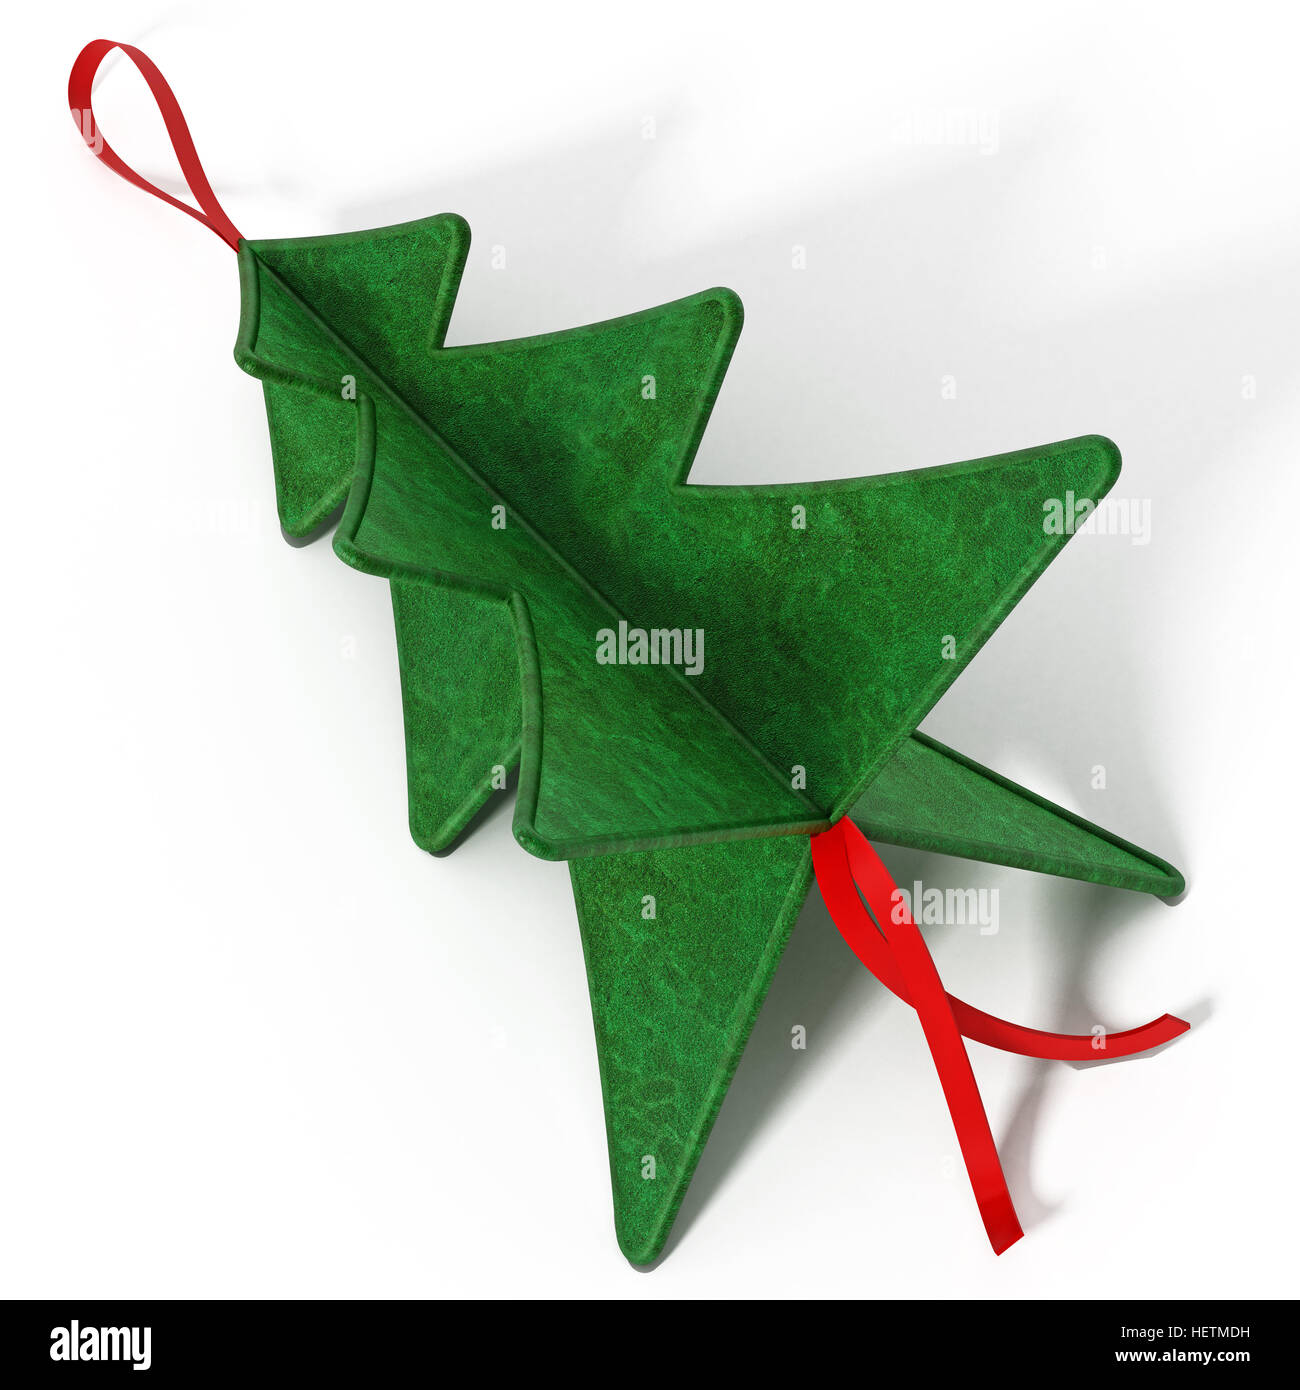 Real Christmas Tree Cut Out Stock Images Pictures Alamy Origami Ornaments On A Star Diagram Pine Isolated White Background 3d Illustration Image